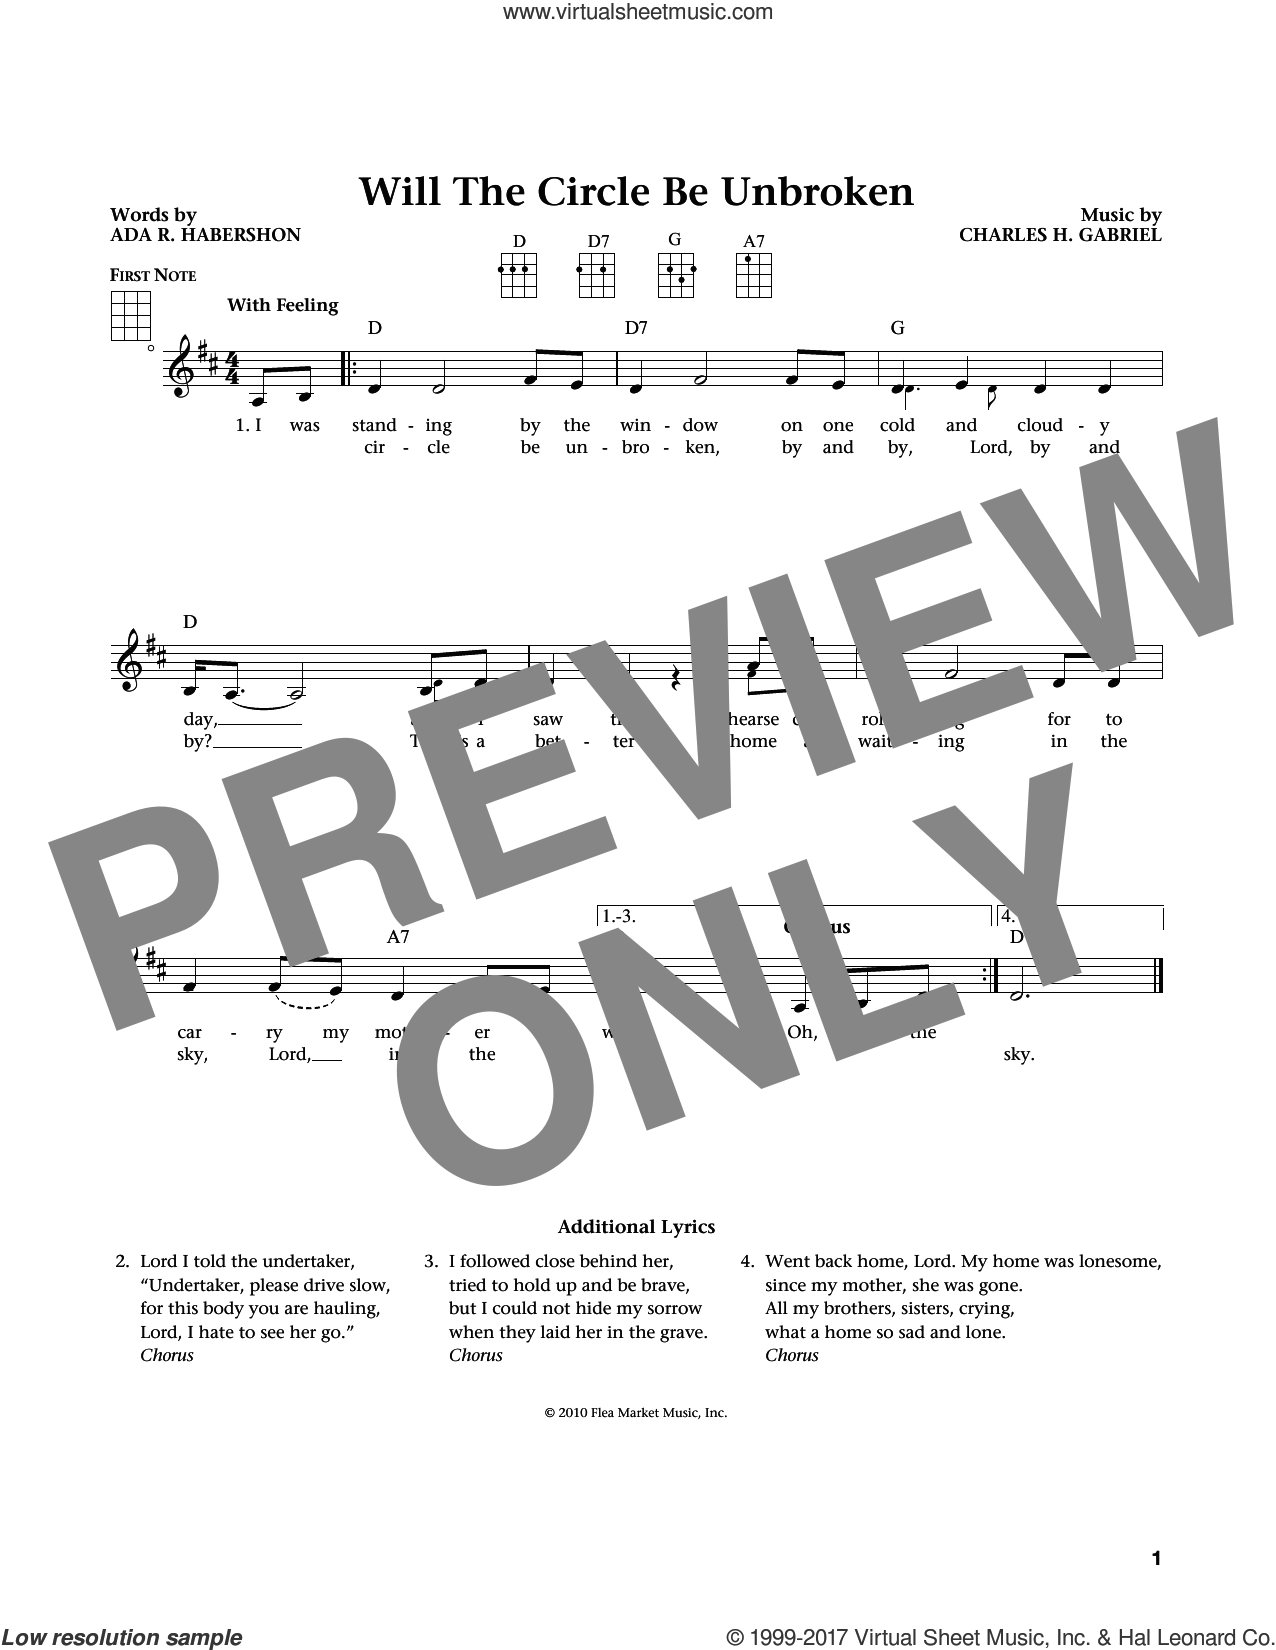 Will The Circle Be Unbroken (from The Daily Ukulele) (arr. Liz and Jim Beloff) sheet music for ukulele by Charles H. Gabriel, Jim Beloff, Liz Beloff and Ada R. Habershon, intermediate skill level